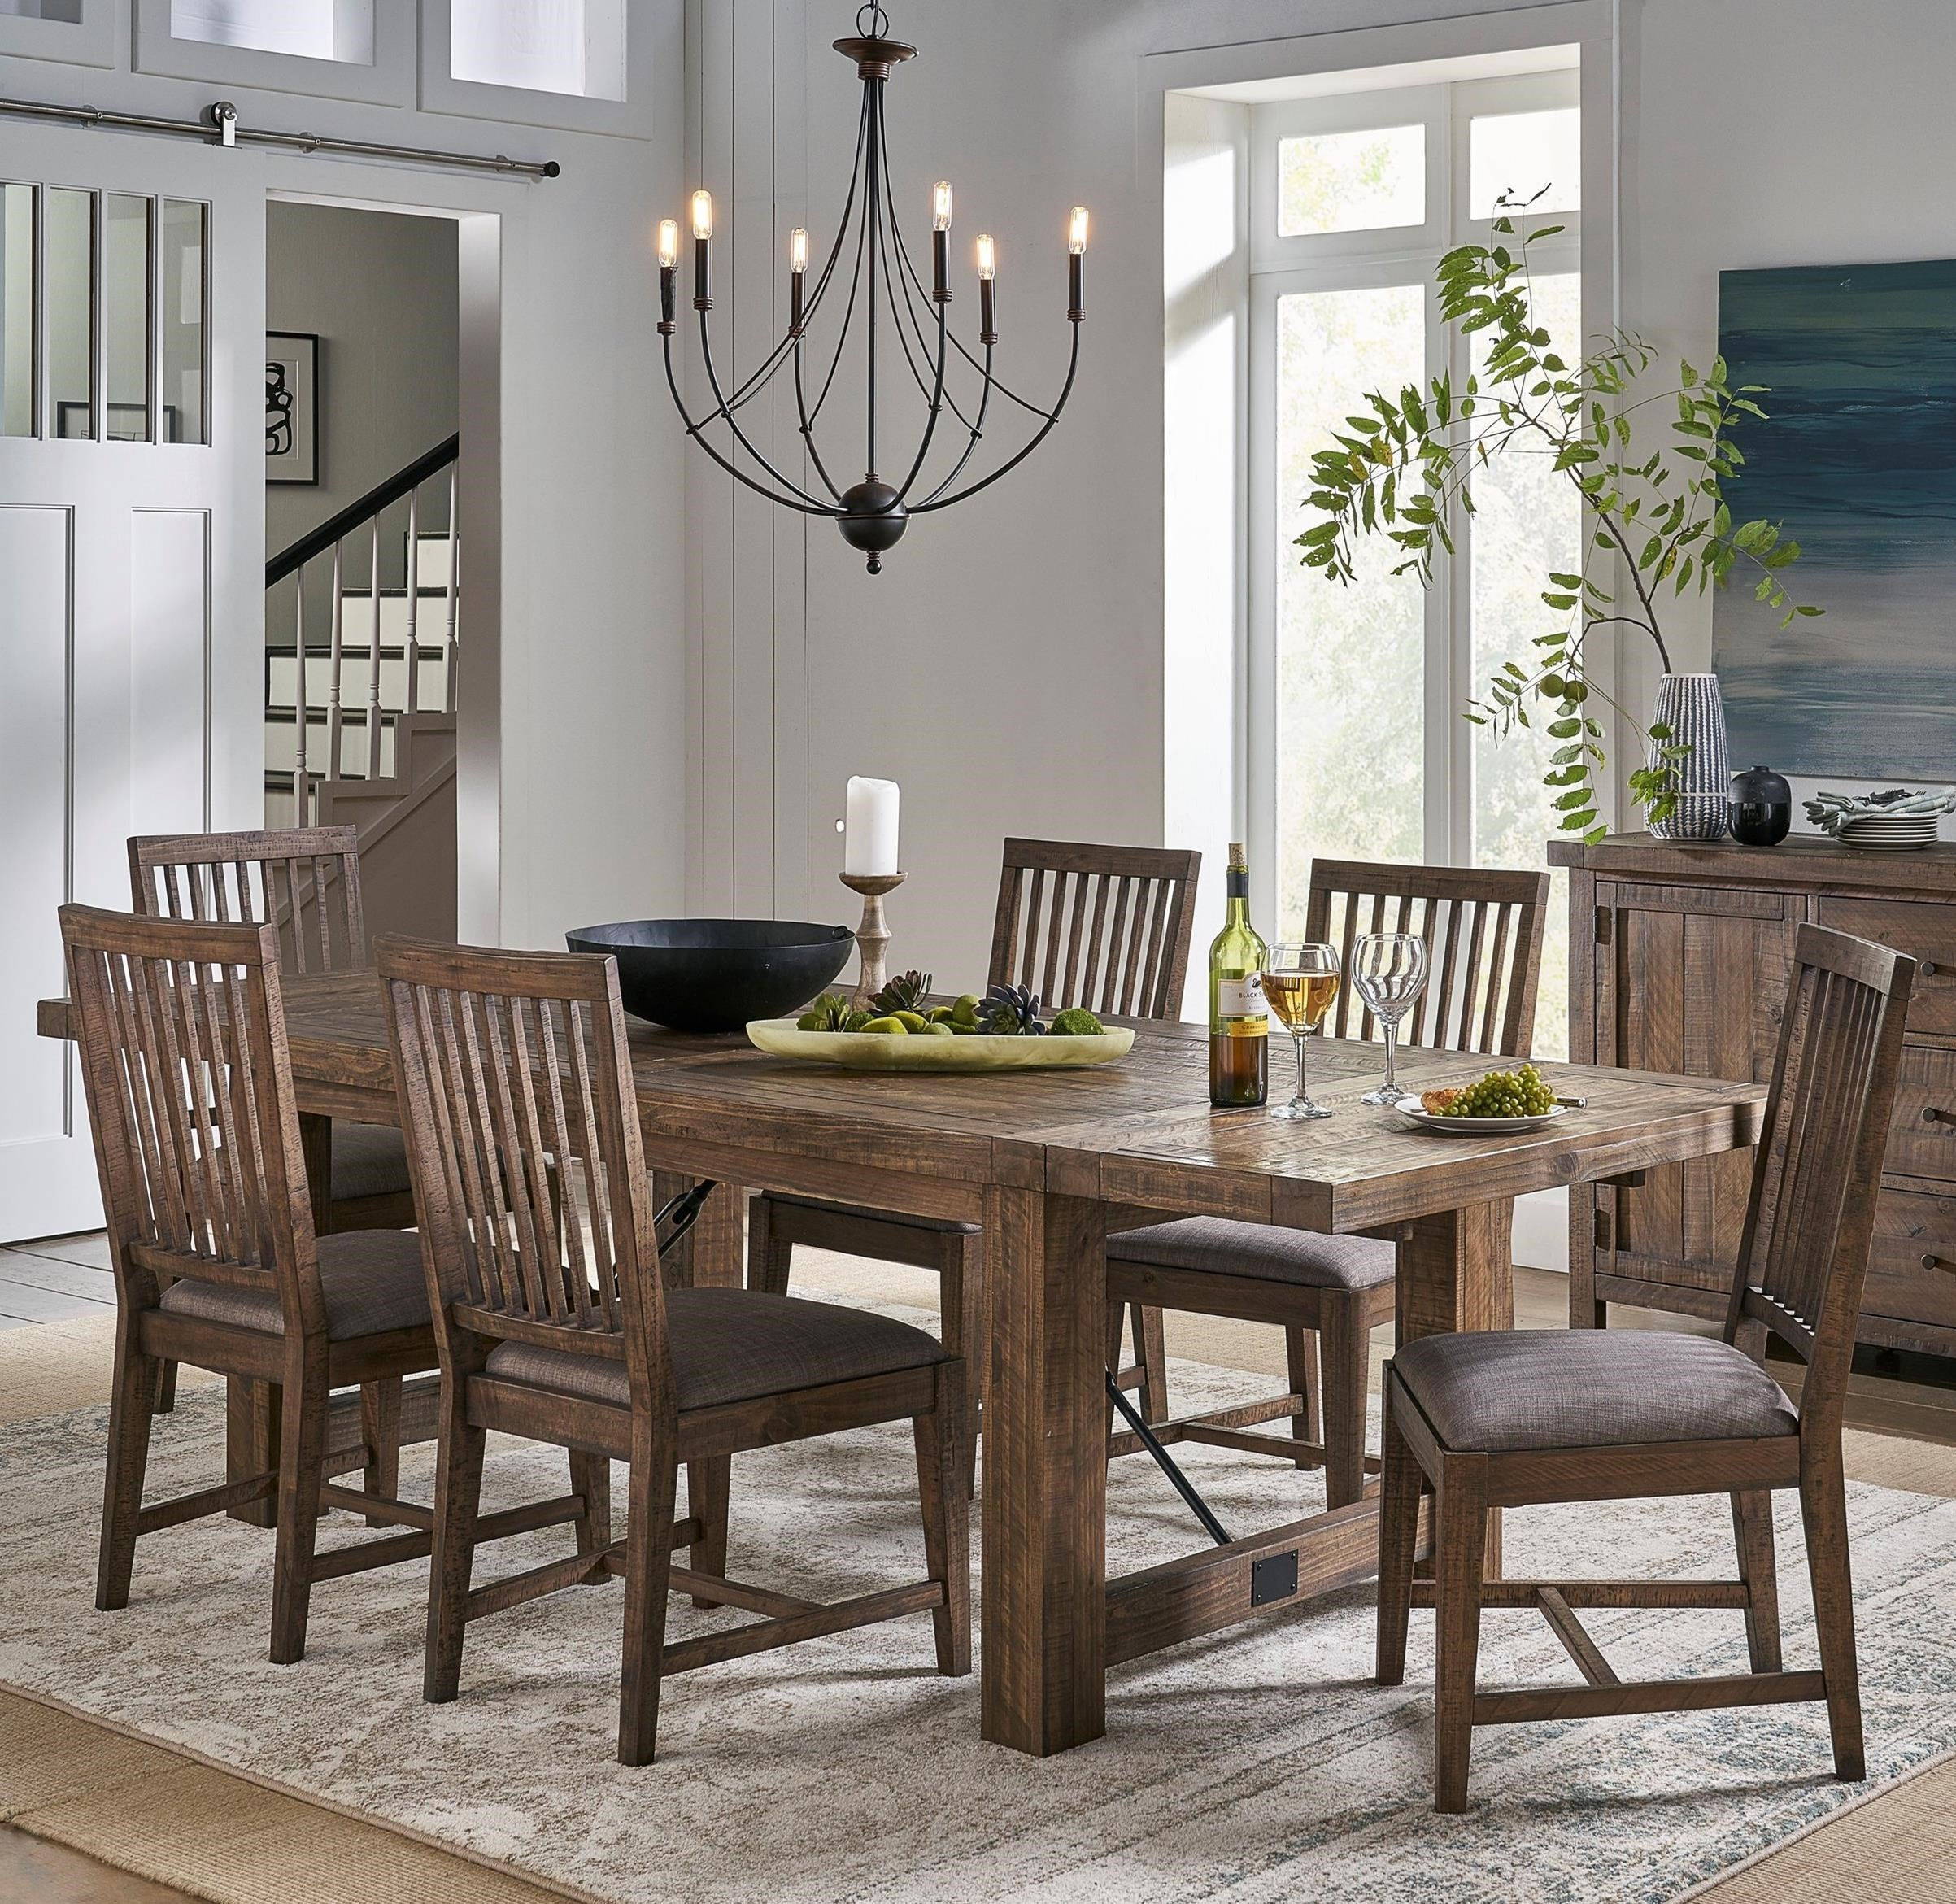 Modus International Autumn Rustic Solid Wood 7 Piece Dining Table Set Reeds Furniture Dining 7 Or More Piece Sets